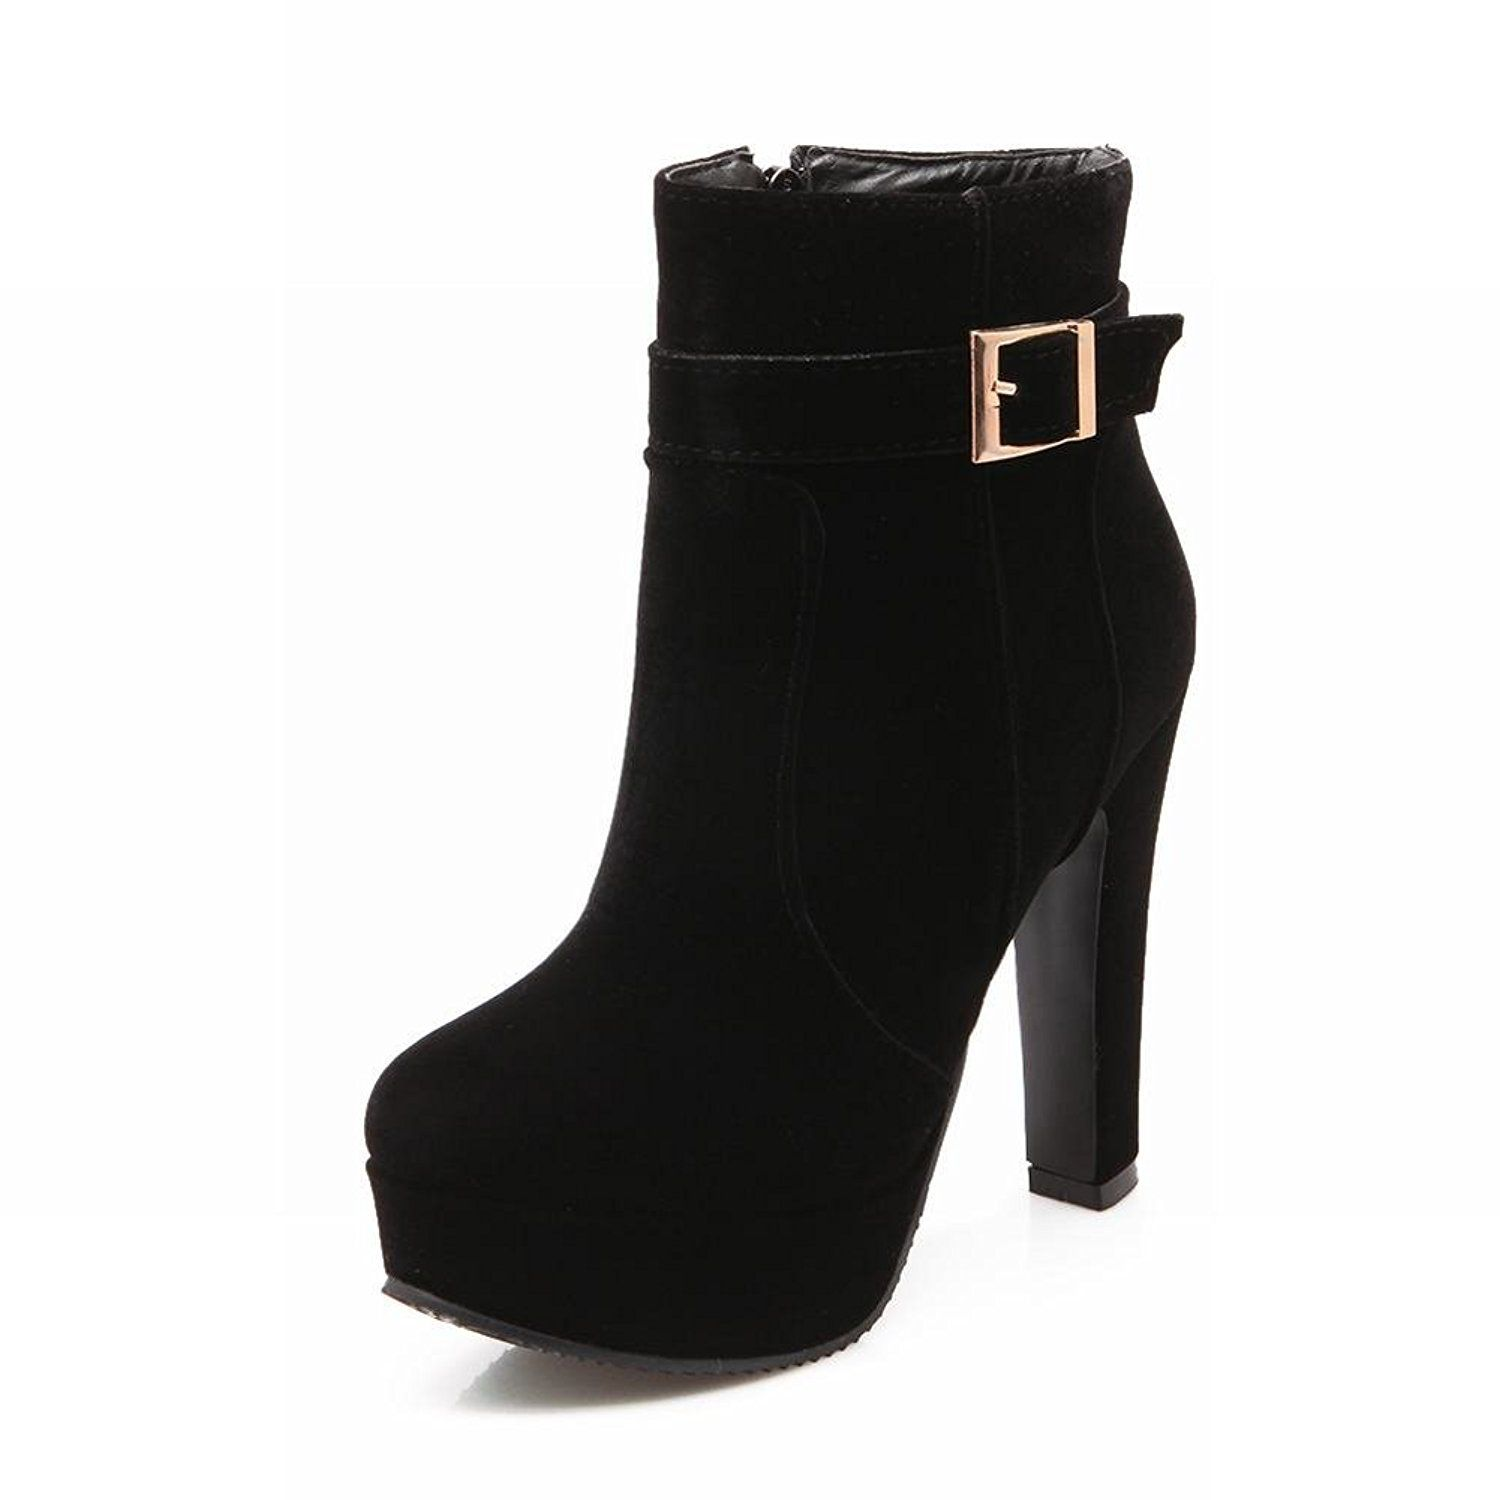 Women's Fashion Sexy Platform High Heel Dress Boots Ankle Boots